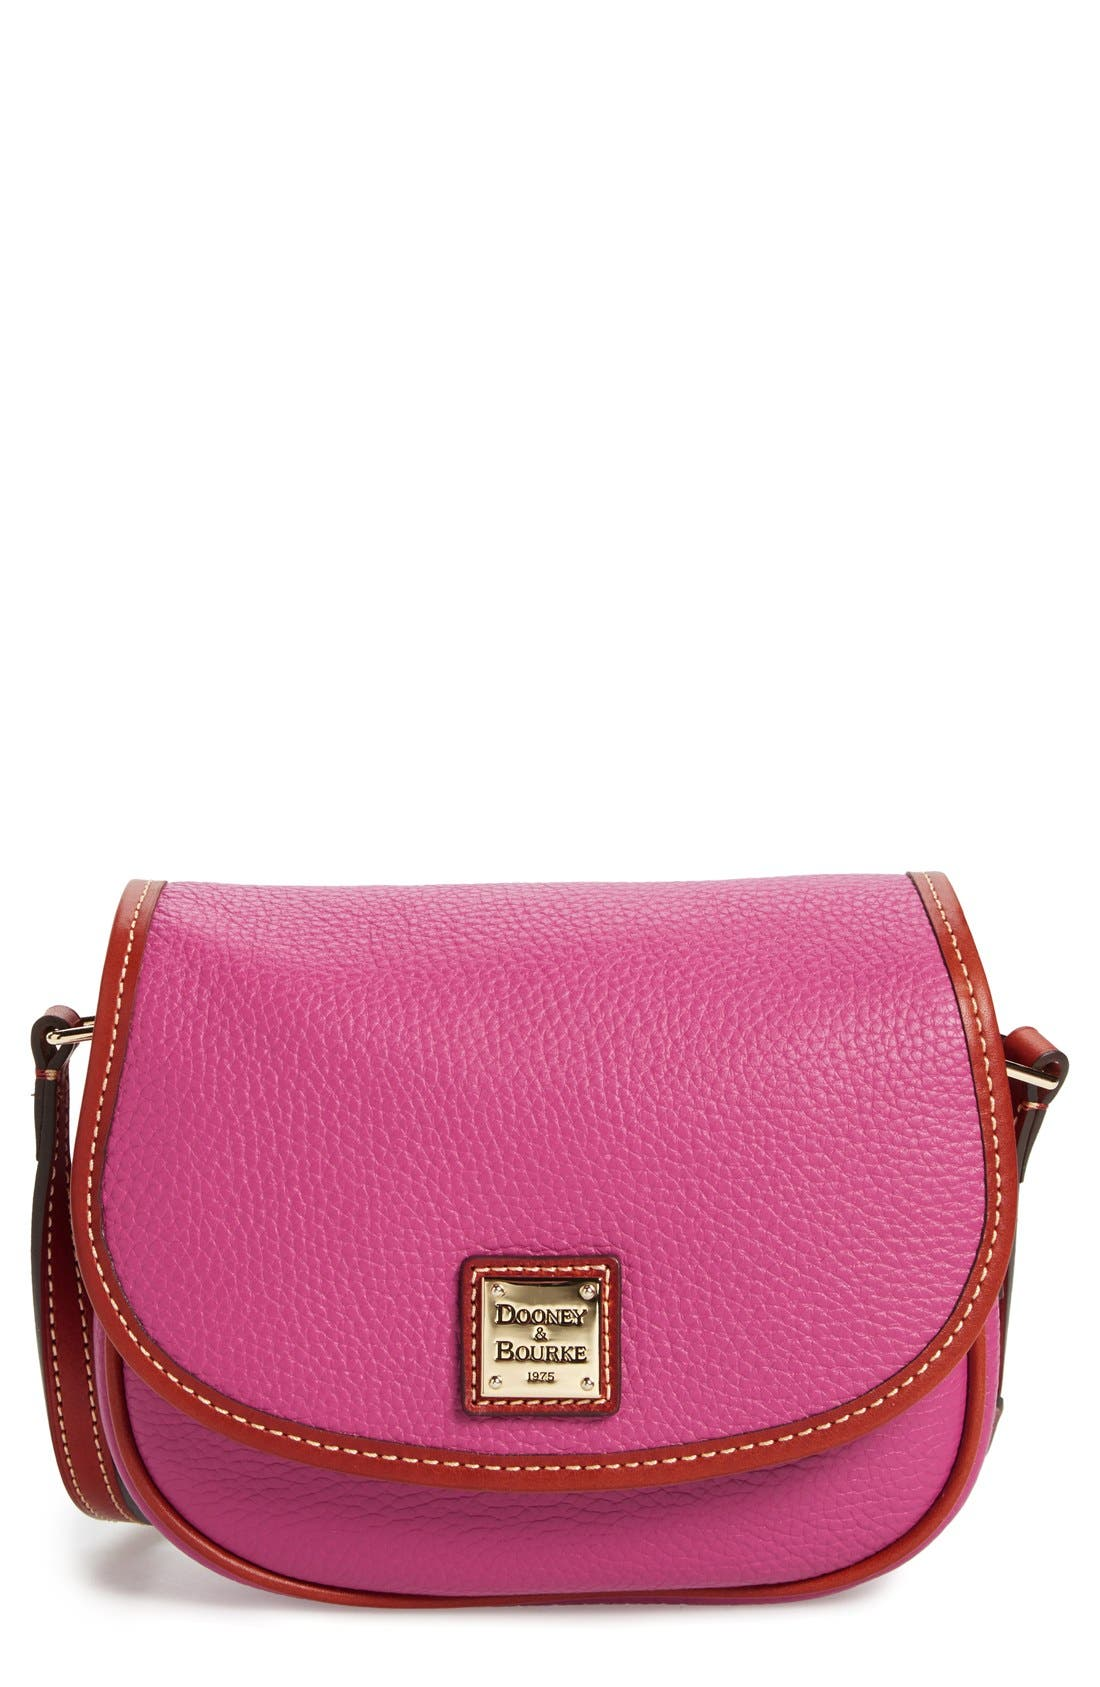 Alternate Image 1 Selected - Dooney & Bourke 'Hallie' Leather Crossbody Bag